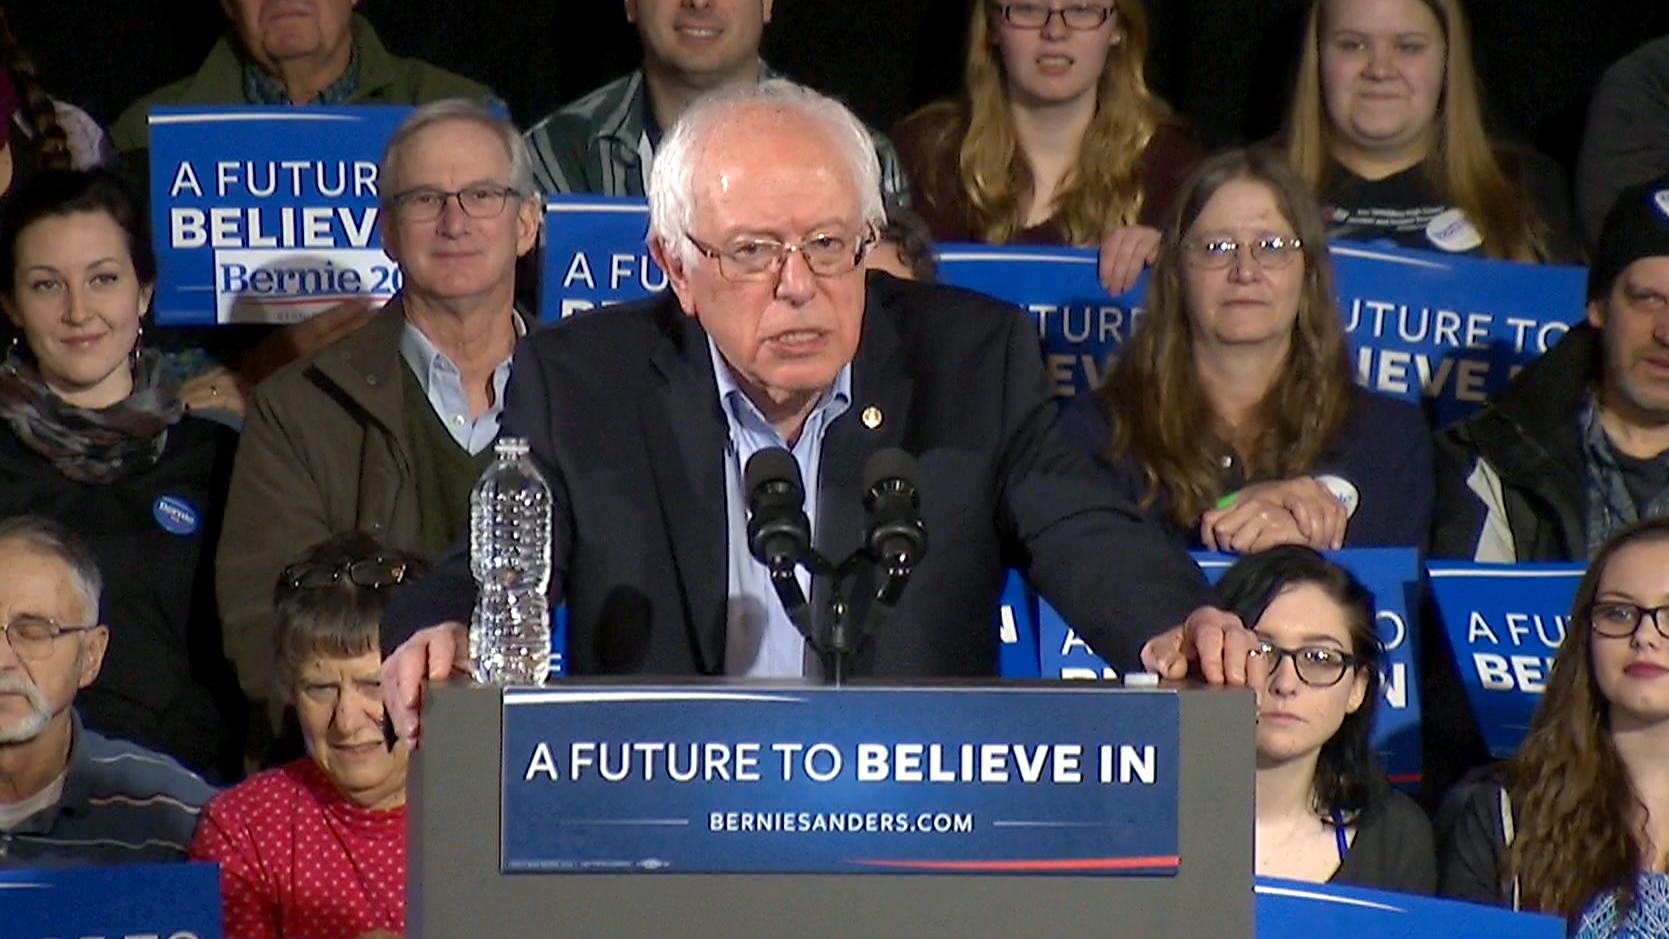 Poll: Sanders Leads Clinton by 20 Points in New Hampshire